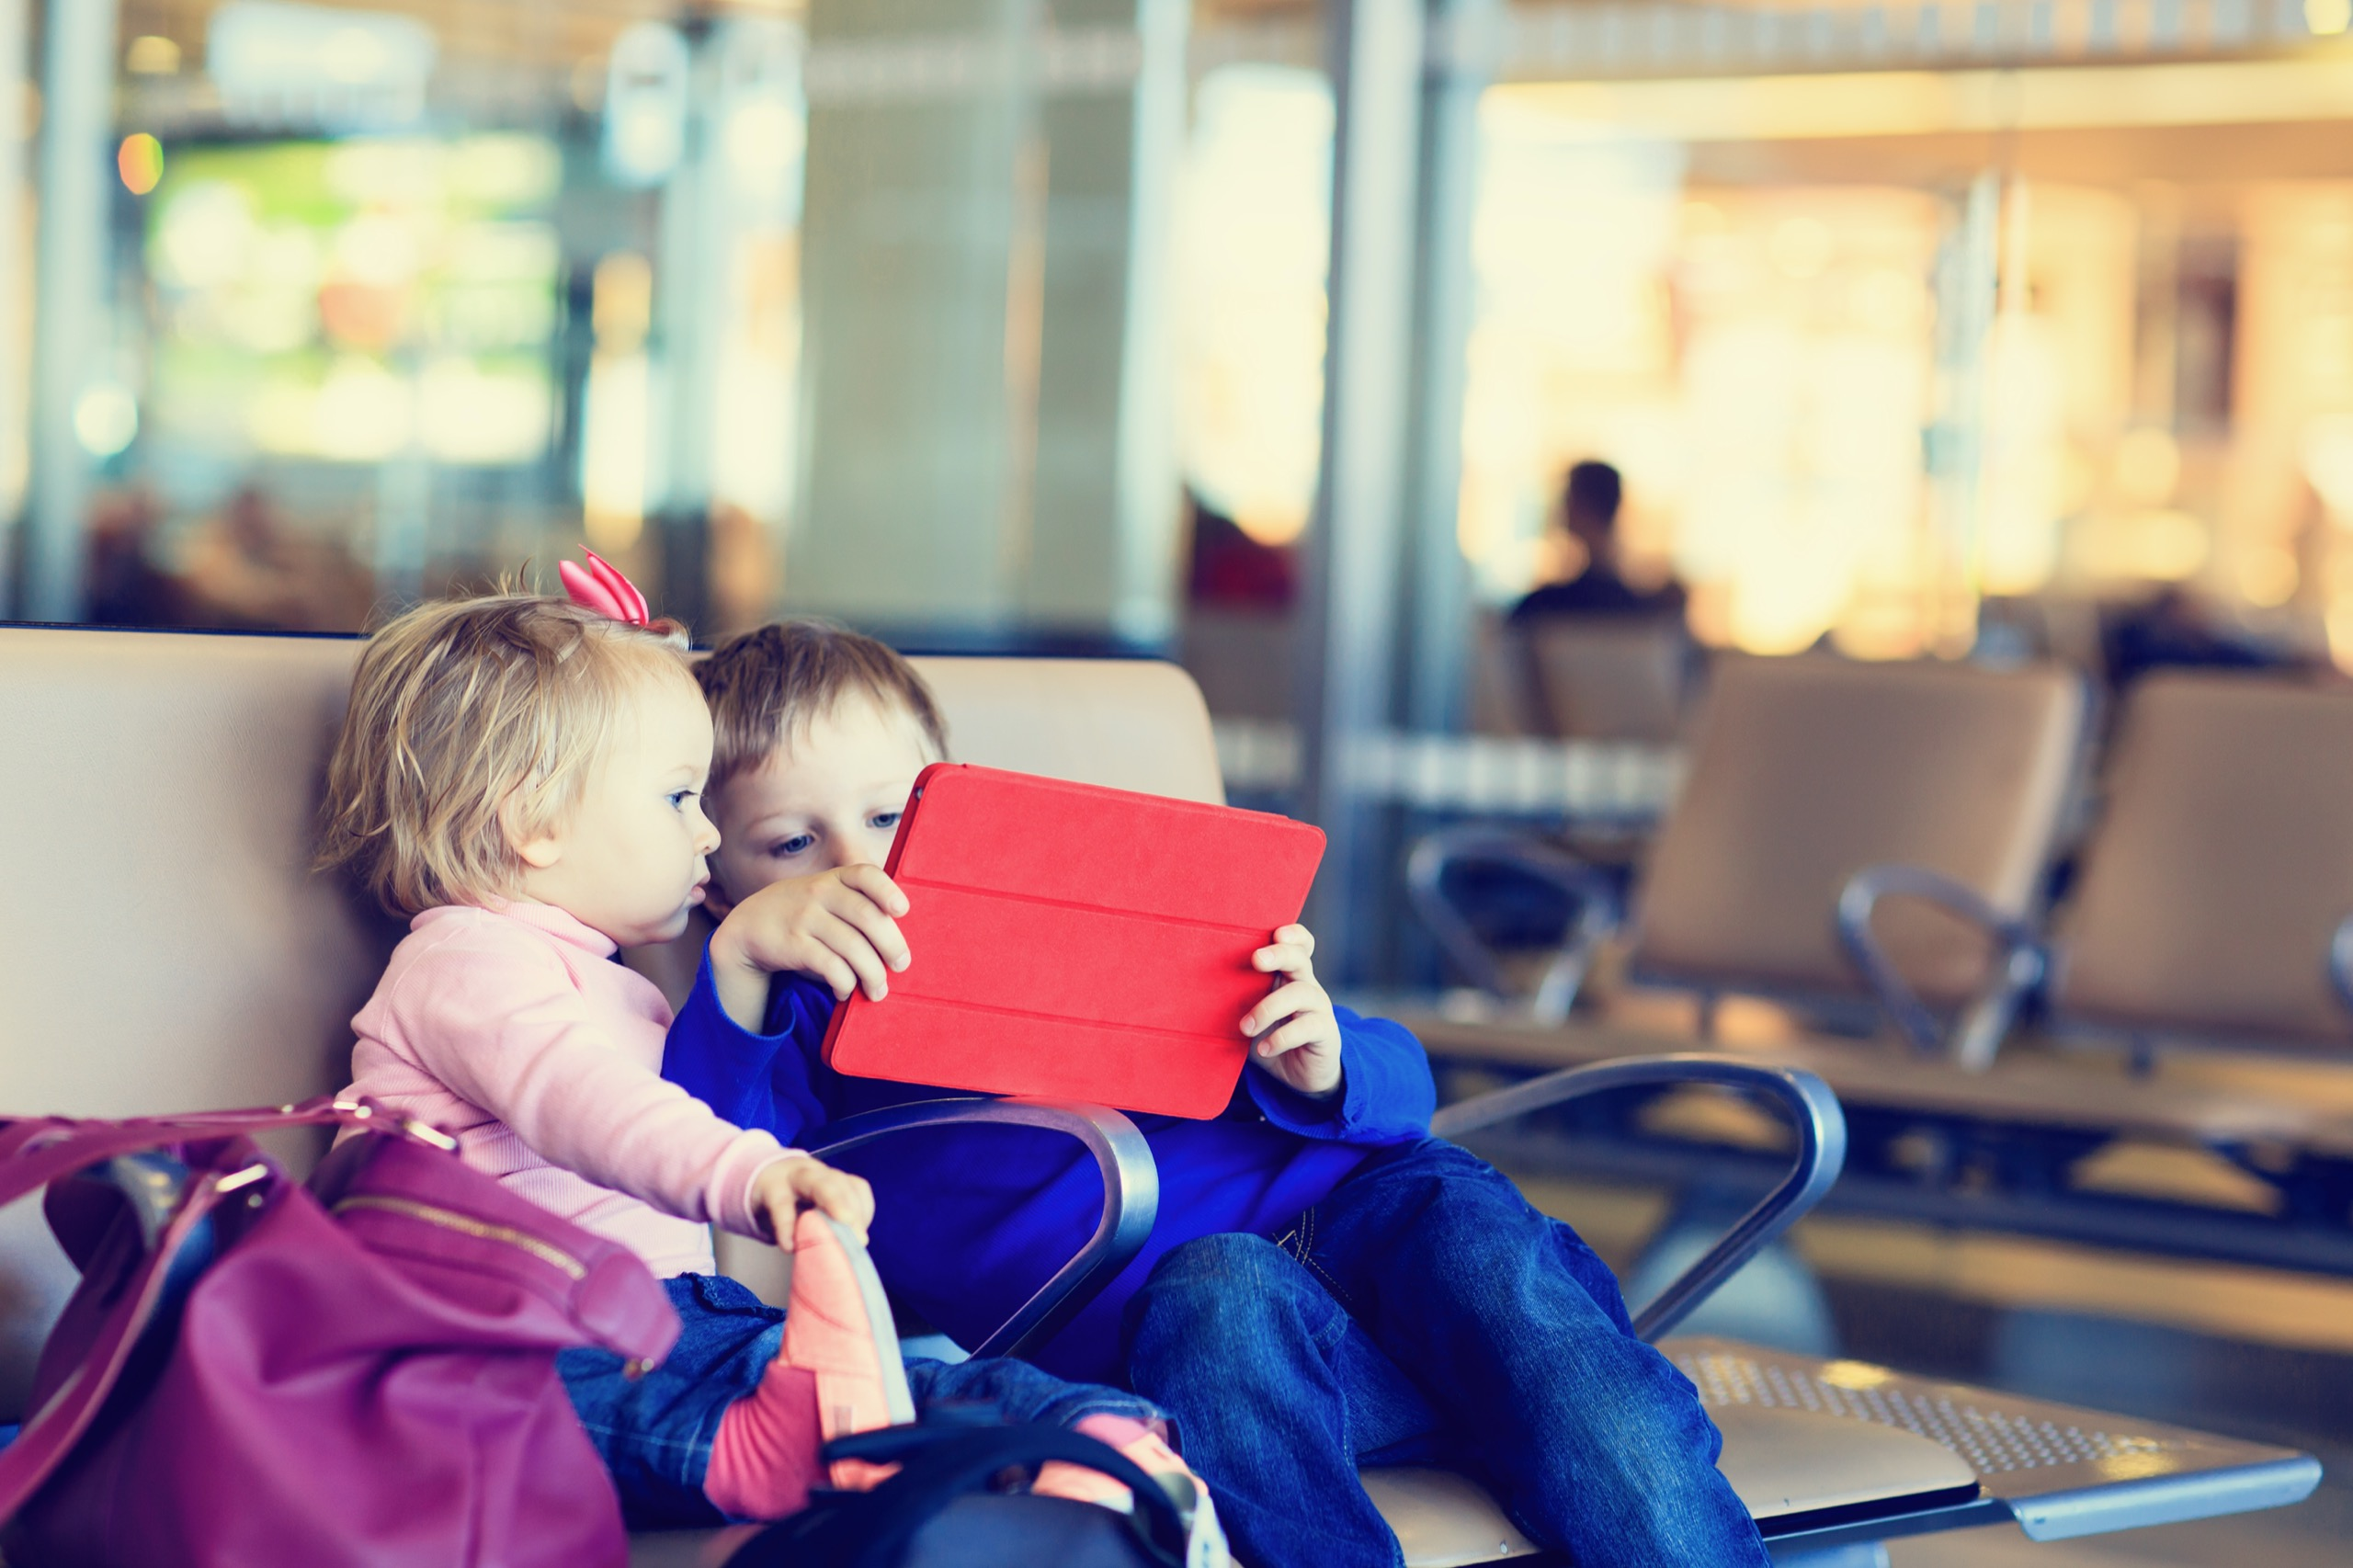 Two young children look at a digital tablet while sitting and waiting at an airport for their flight to board.